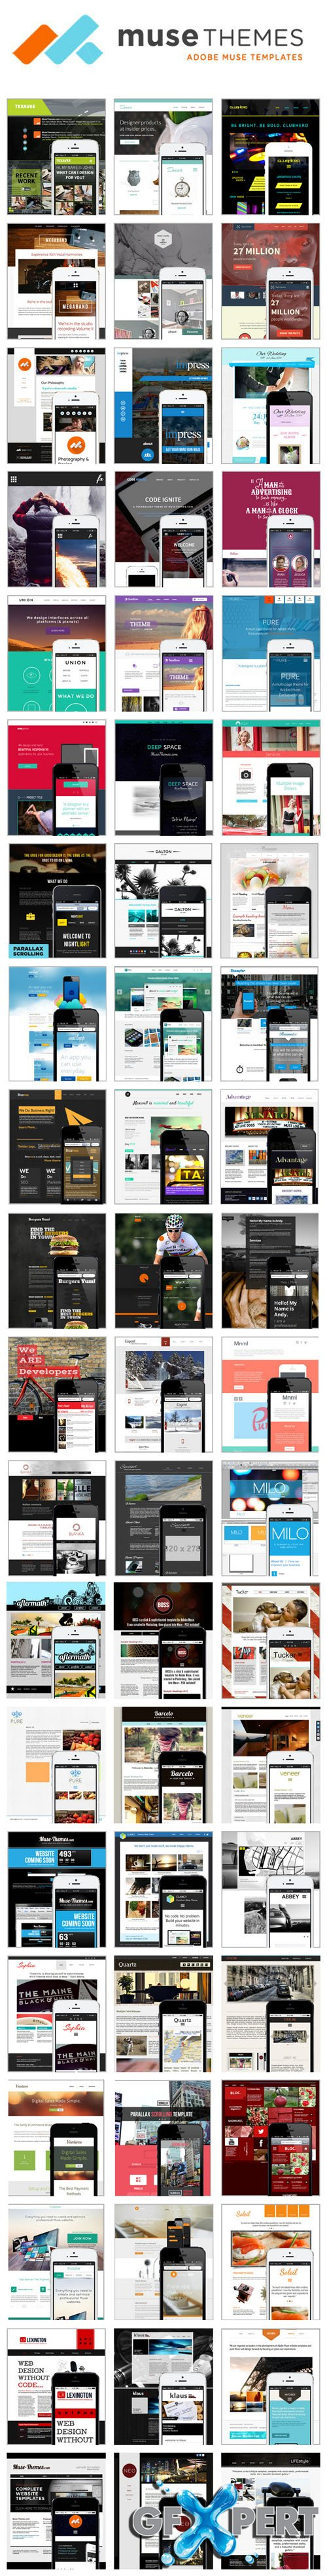 Musethemes - 40 Premium Web Templates Collection